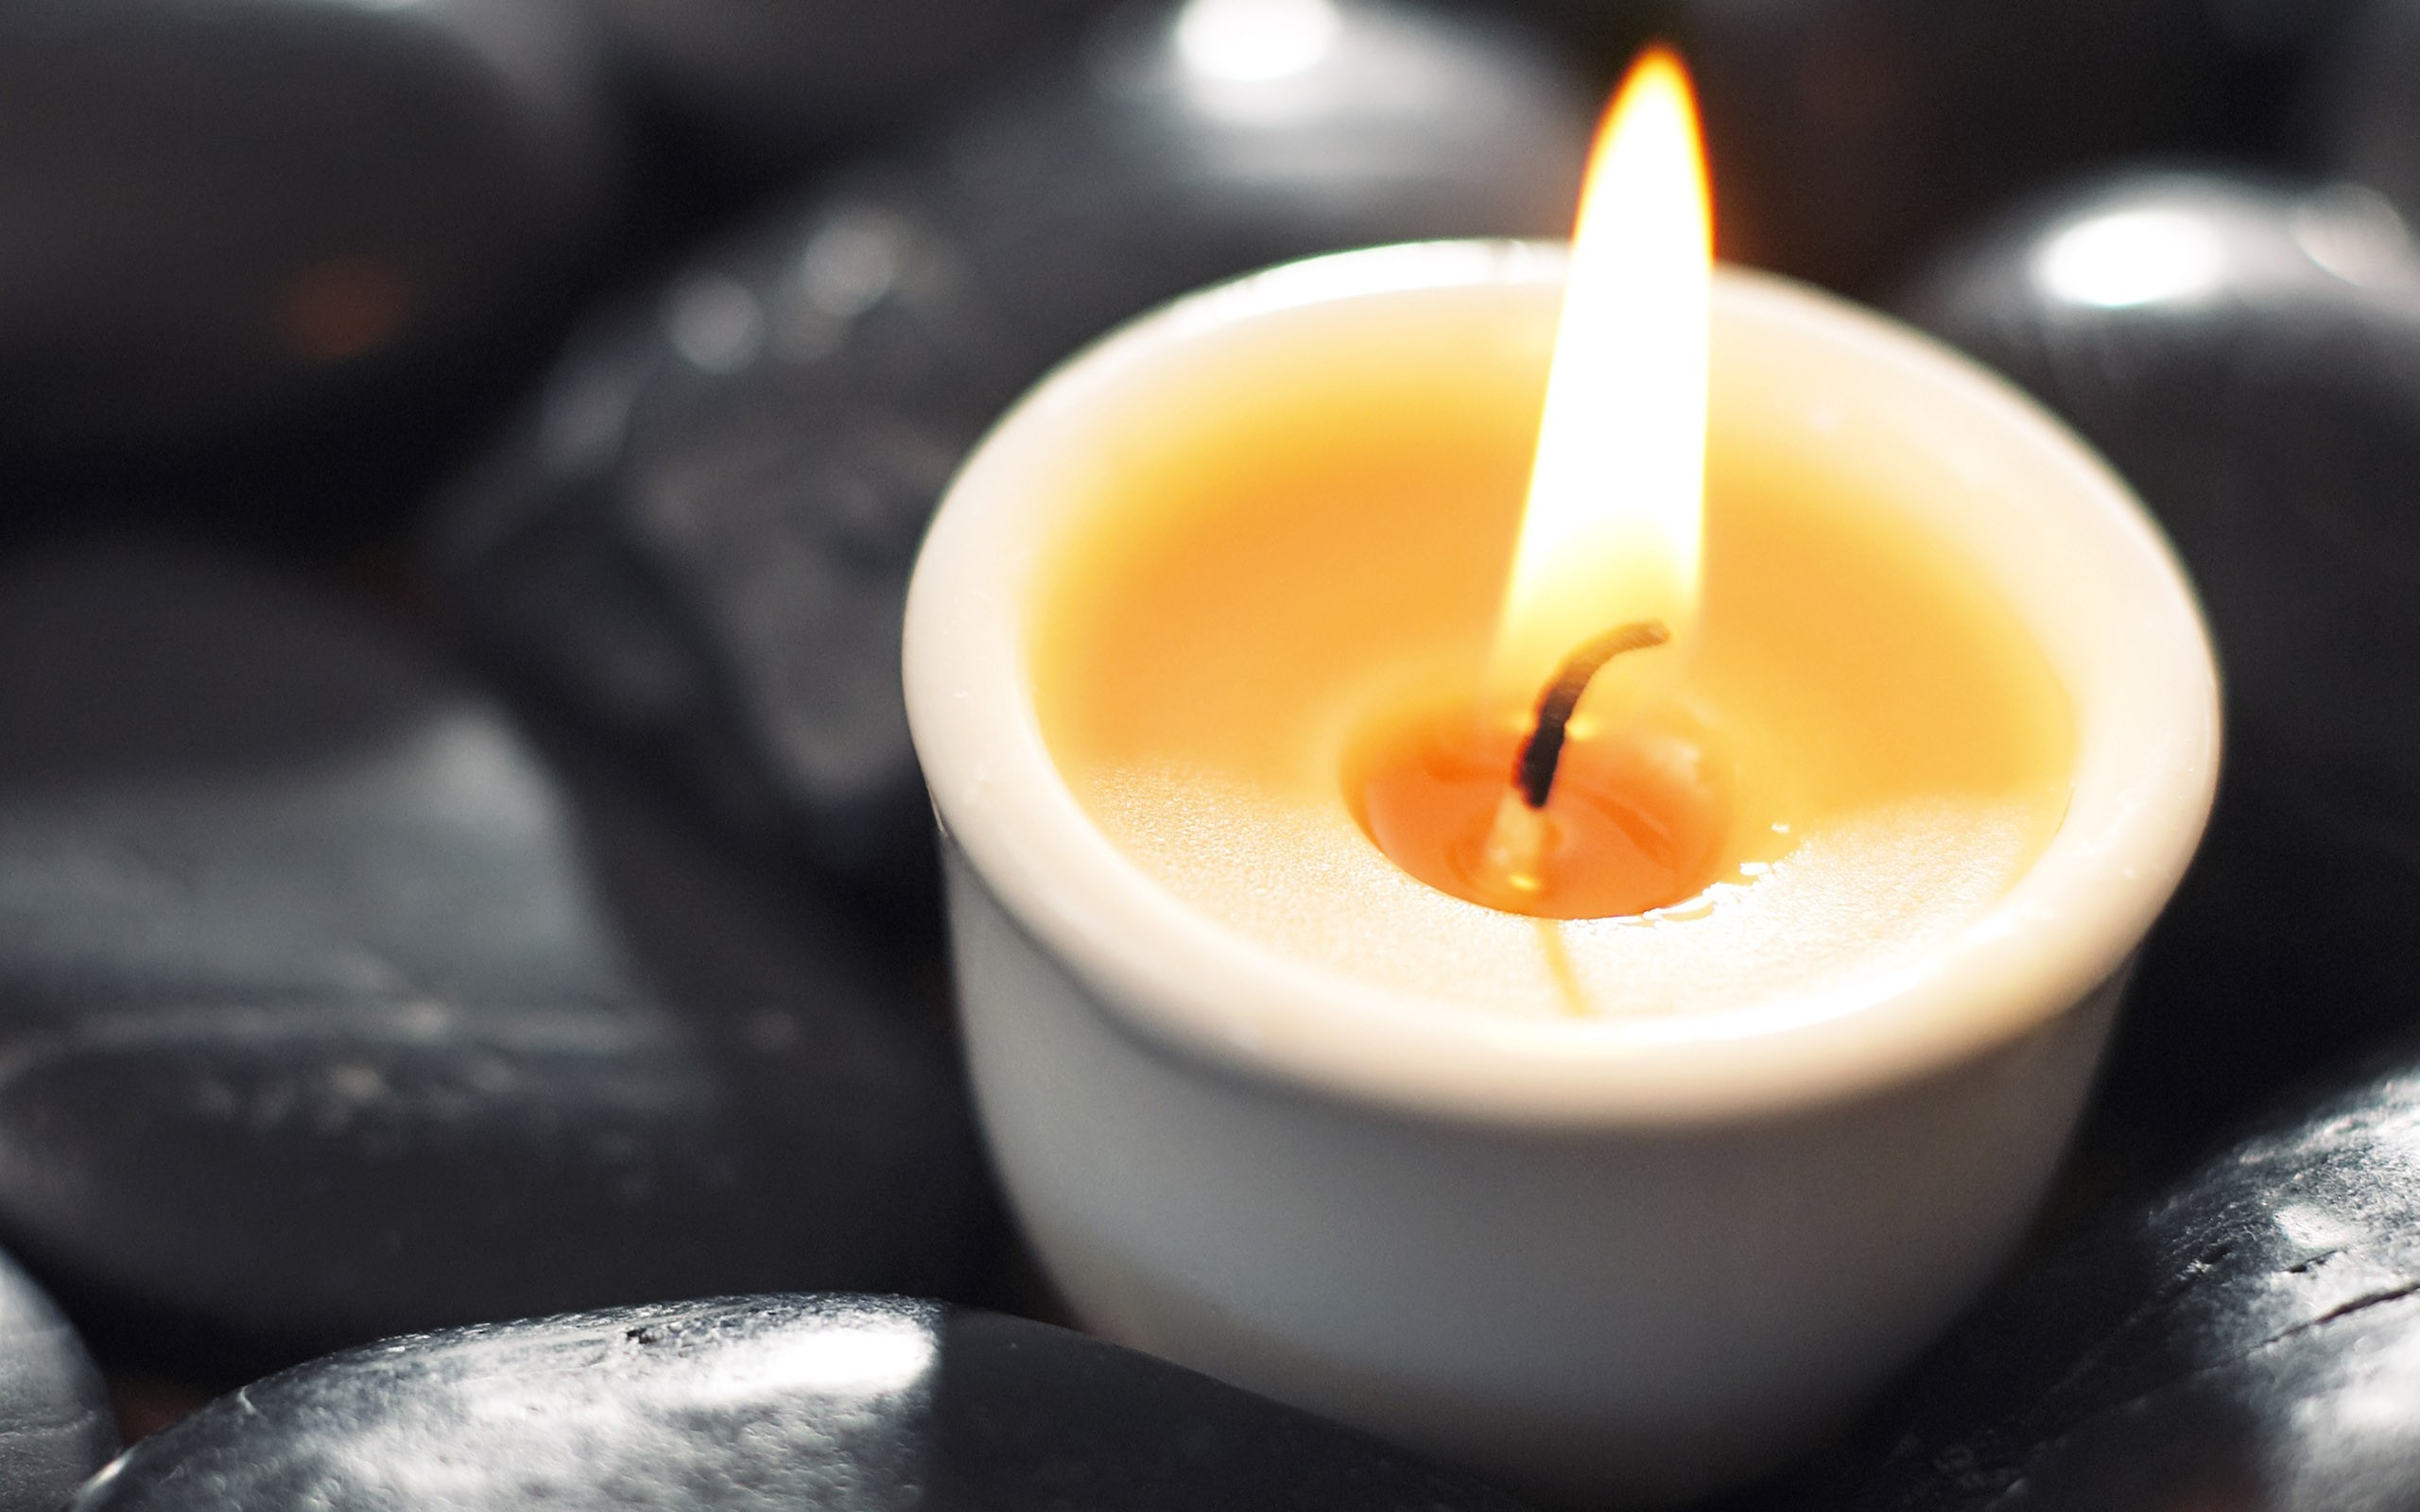 stones Candles flame HD Wallpaper